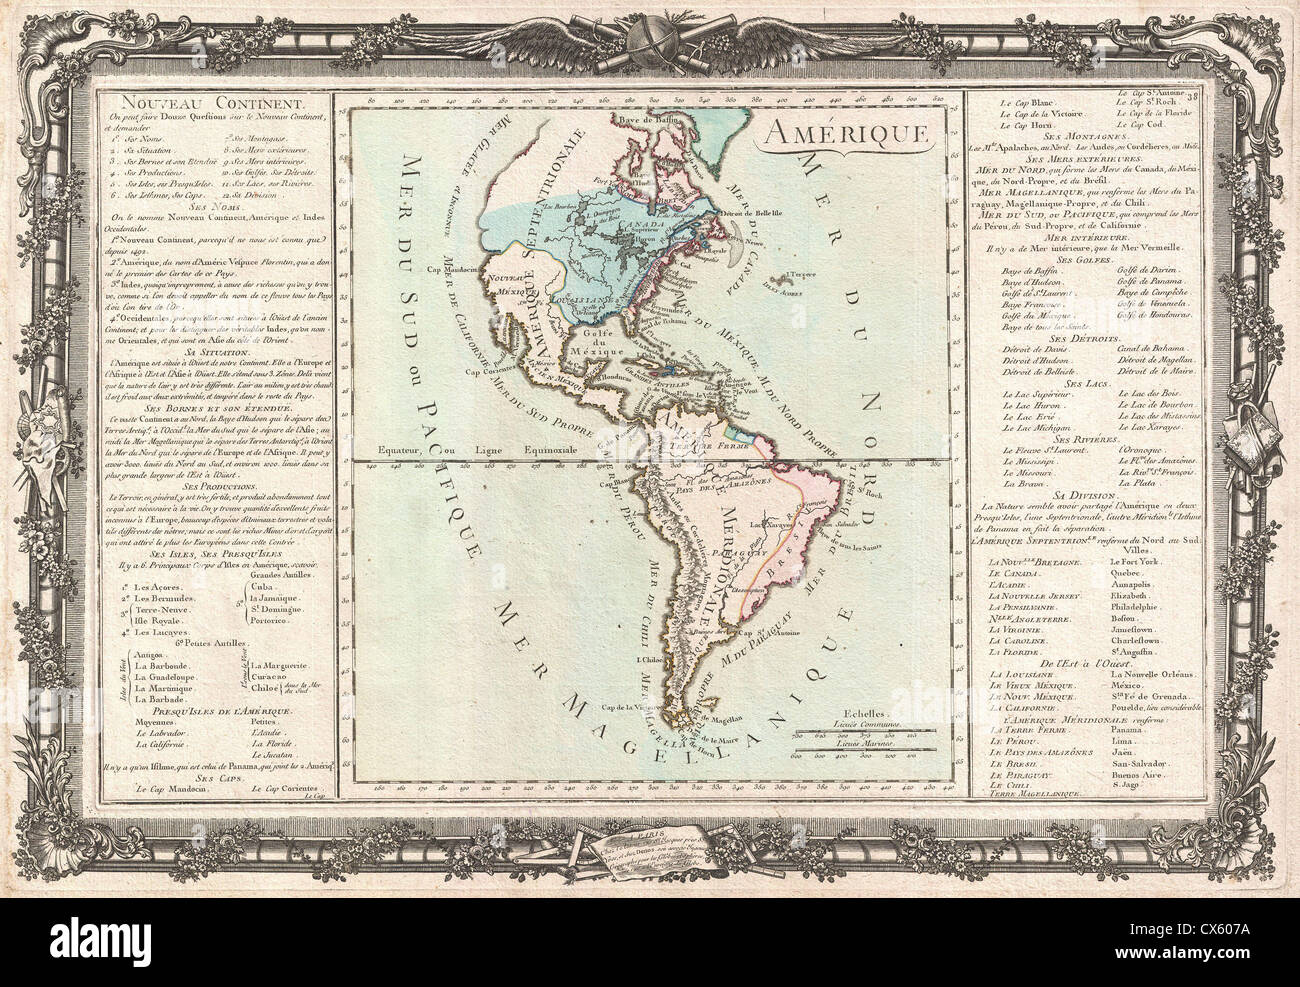 1760 Desnos and De La Tour Map of North America and South America - Stock Image